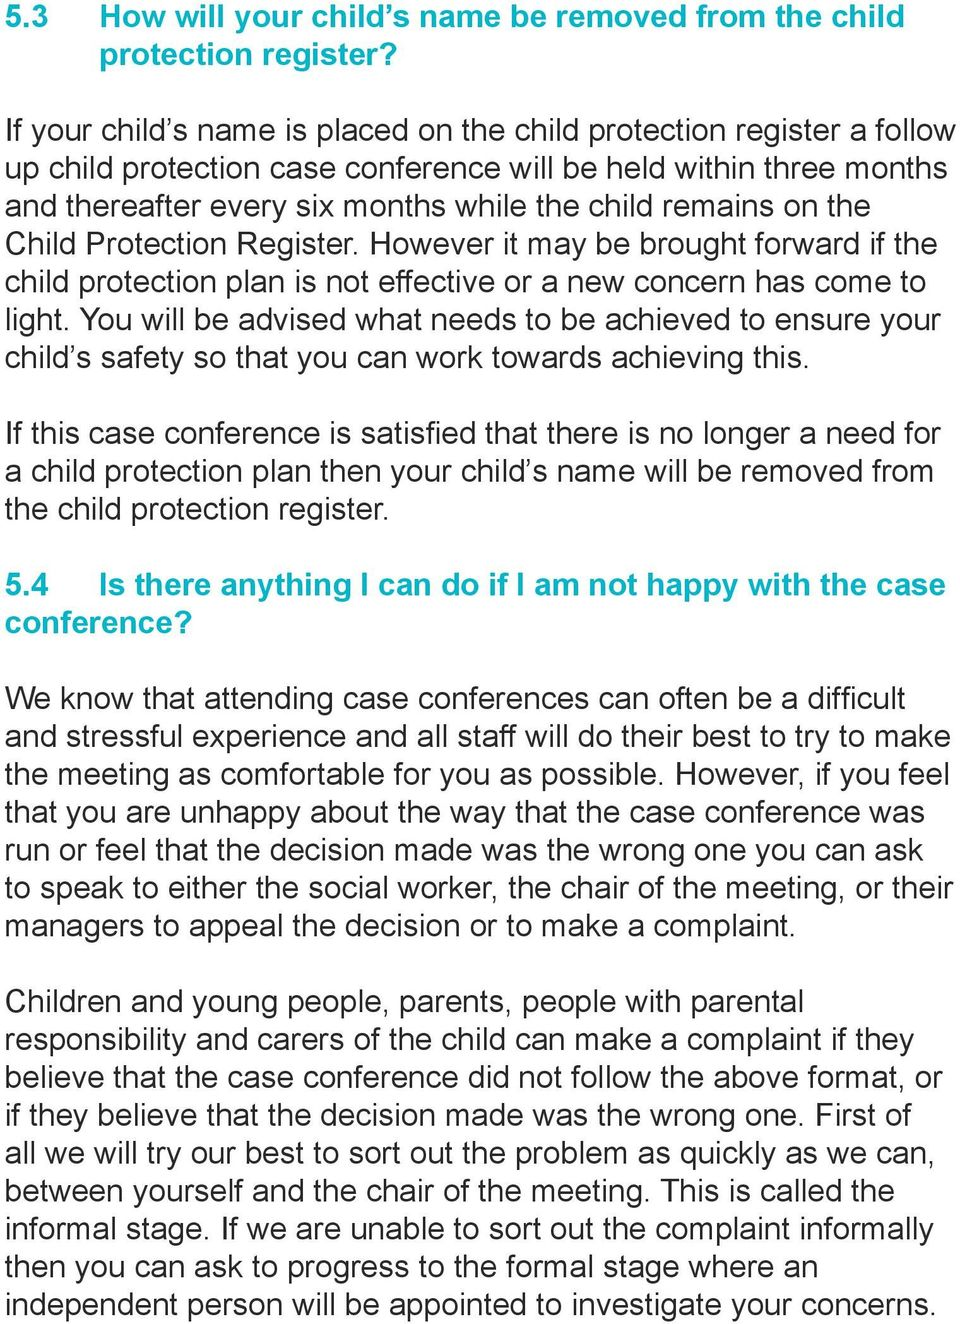 on the Child Protection Register. However it may be brought forward if the child protection plan is not effective or a new concern has come to light.